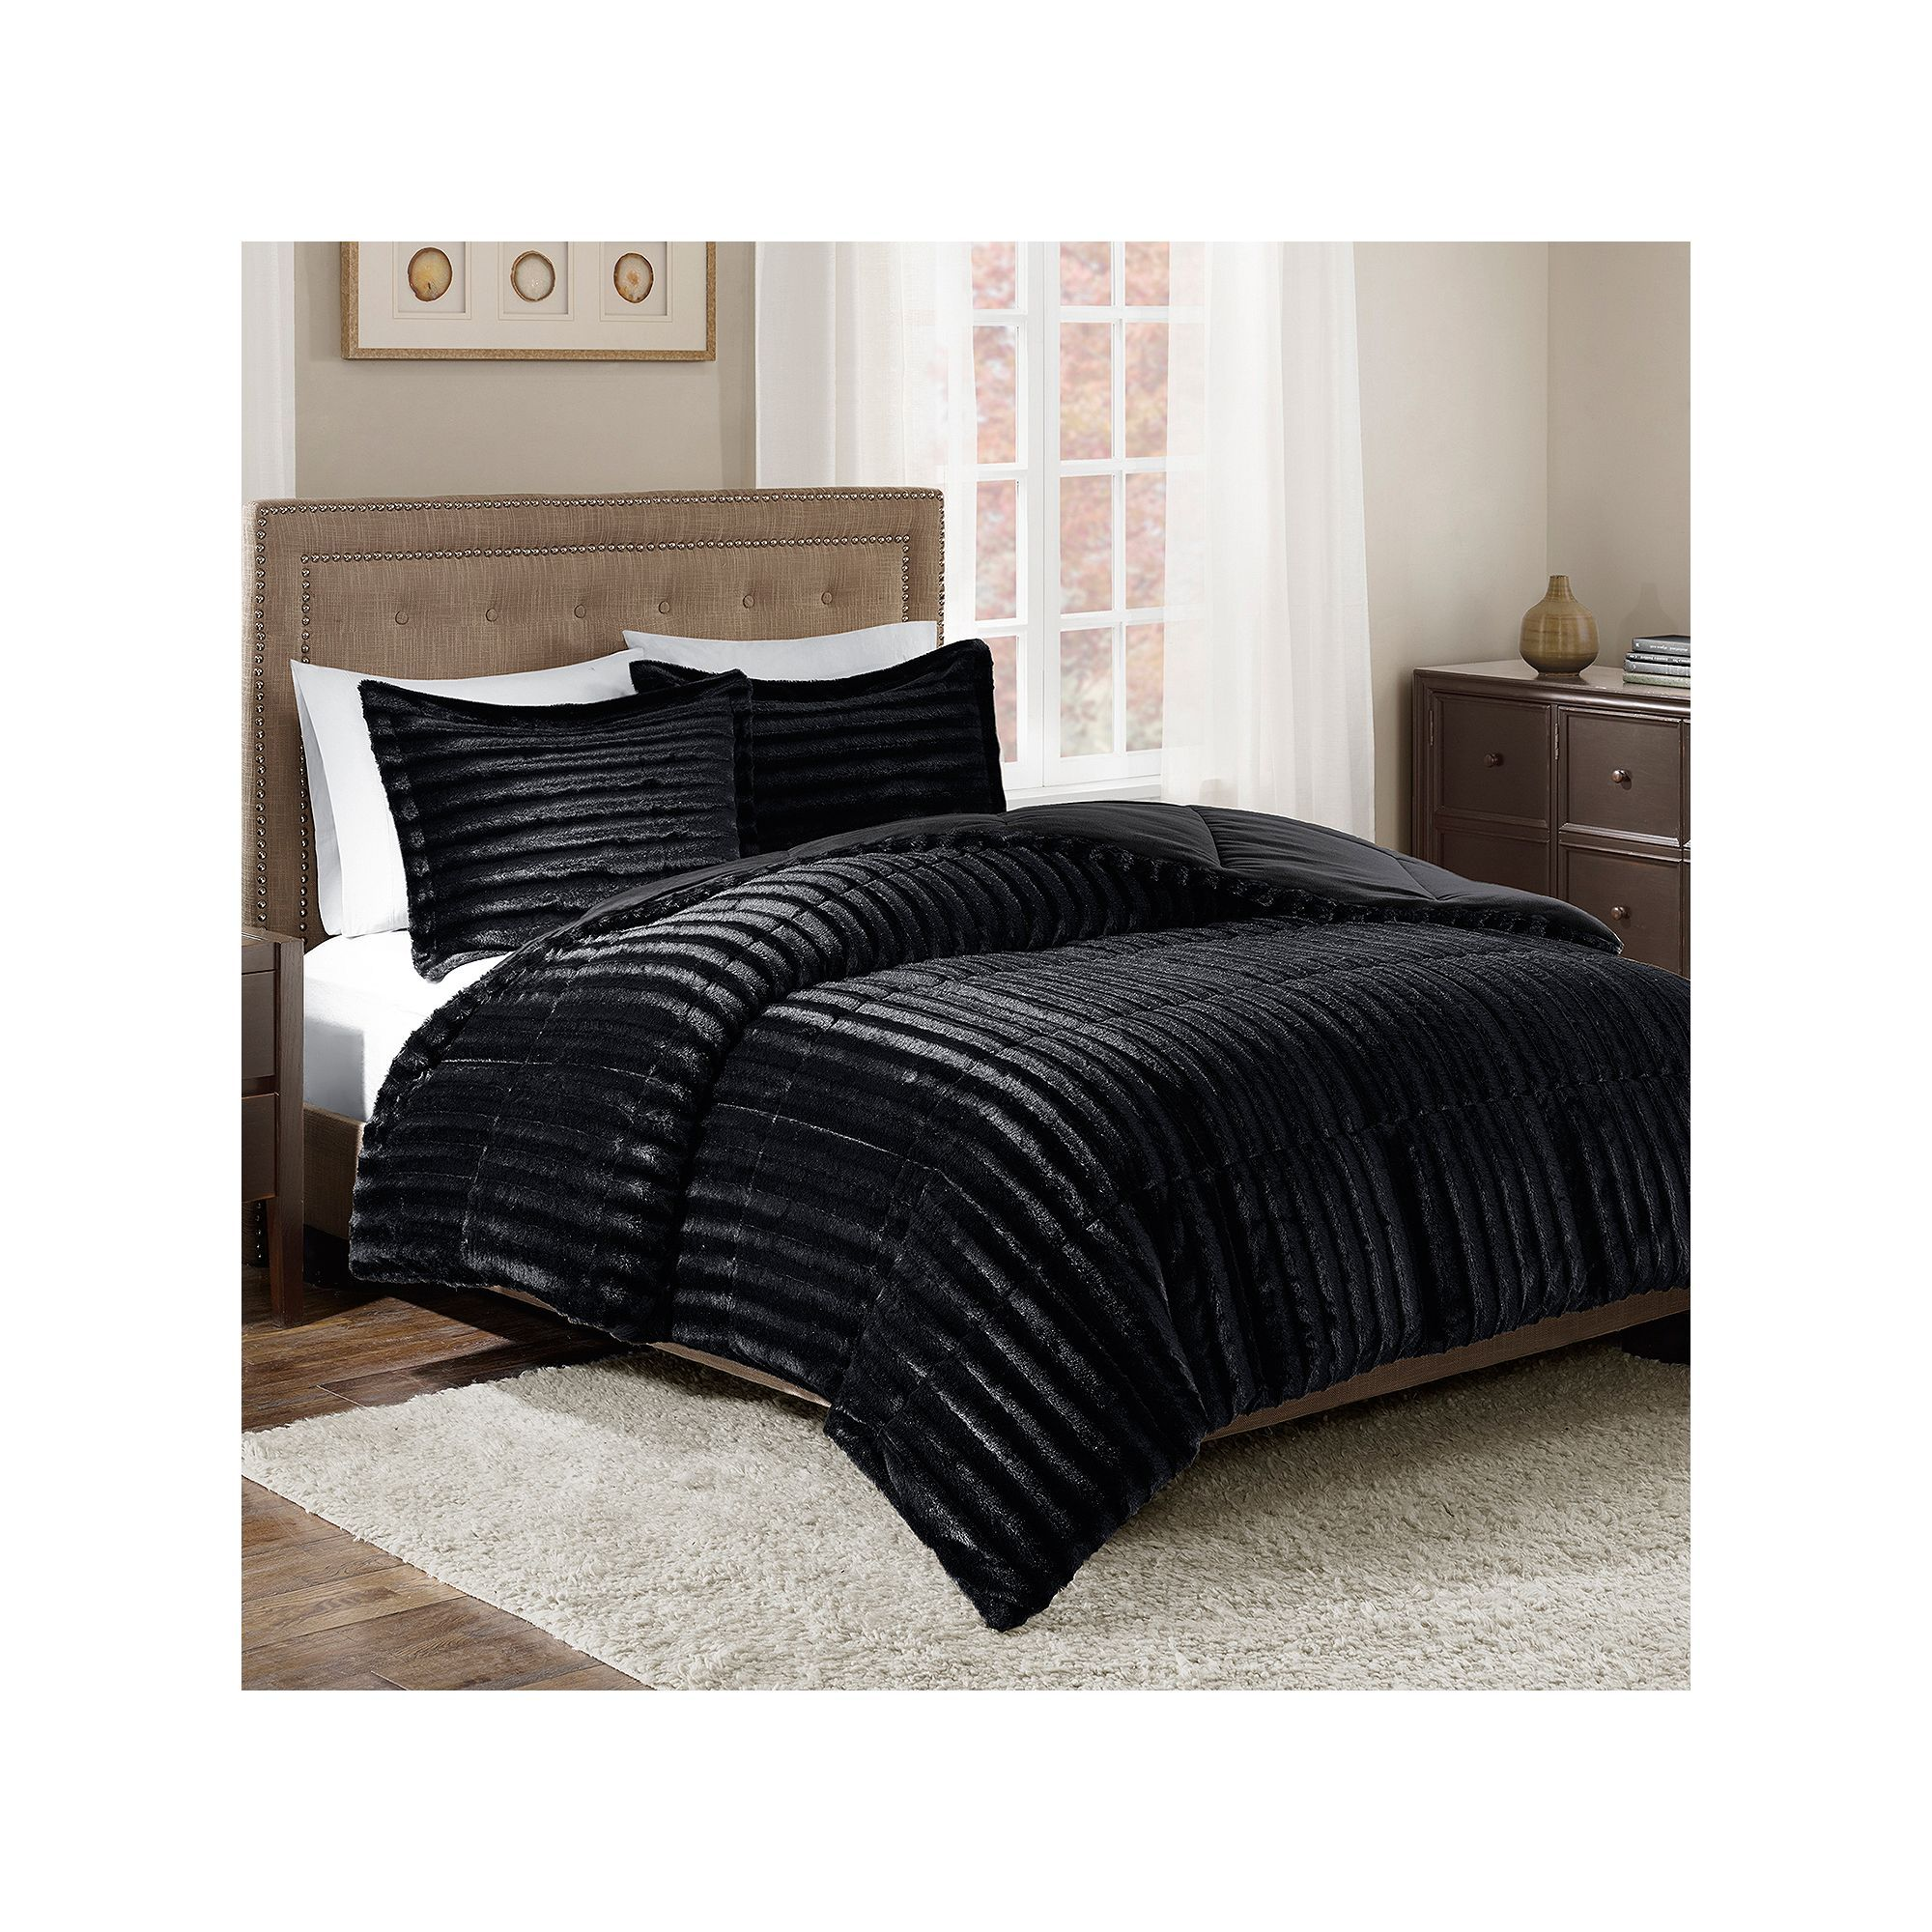 bedspreads introducing blue accents bedspread bed by fur rave bedding luxurious faux